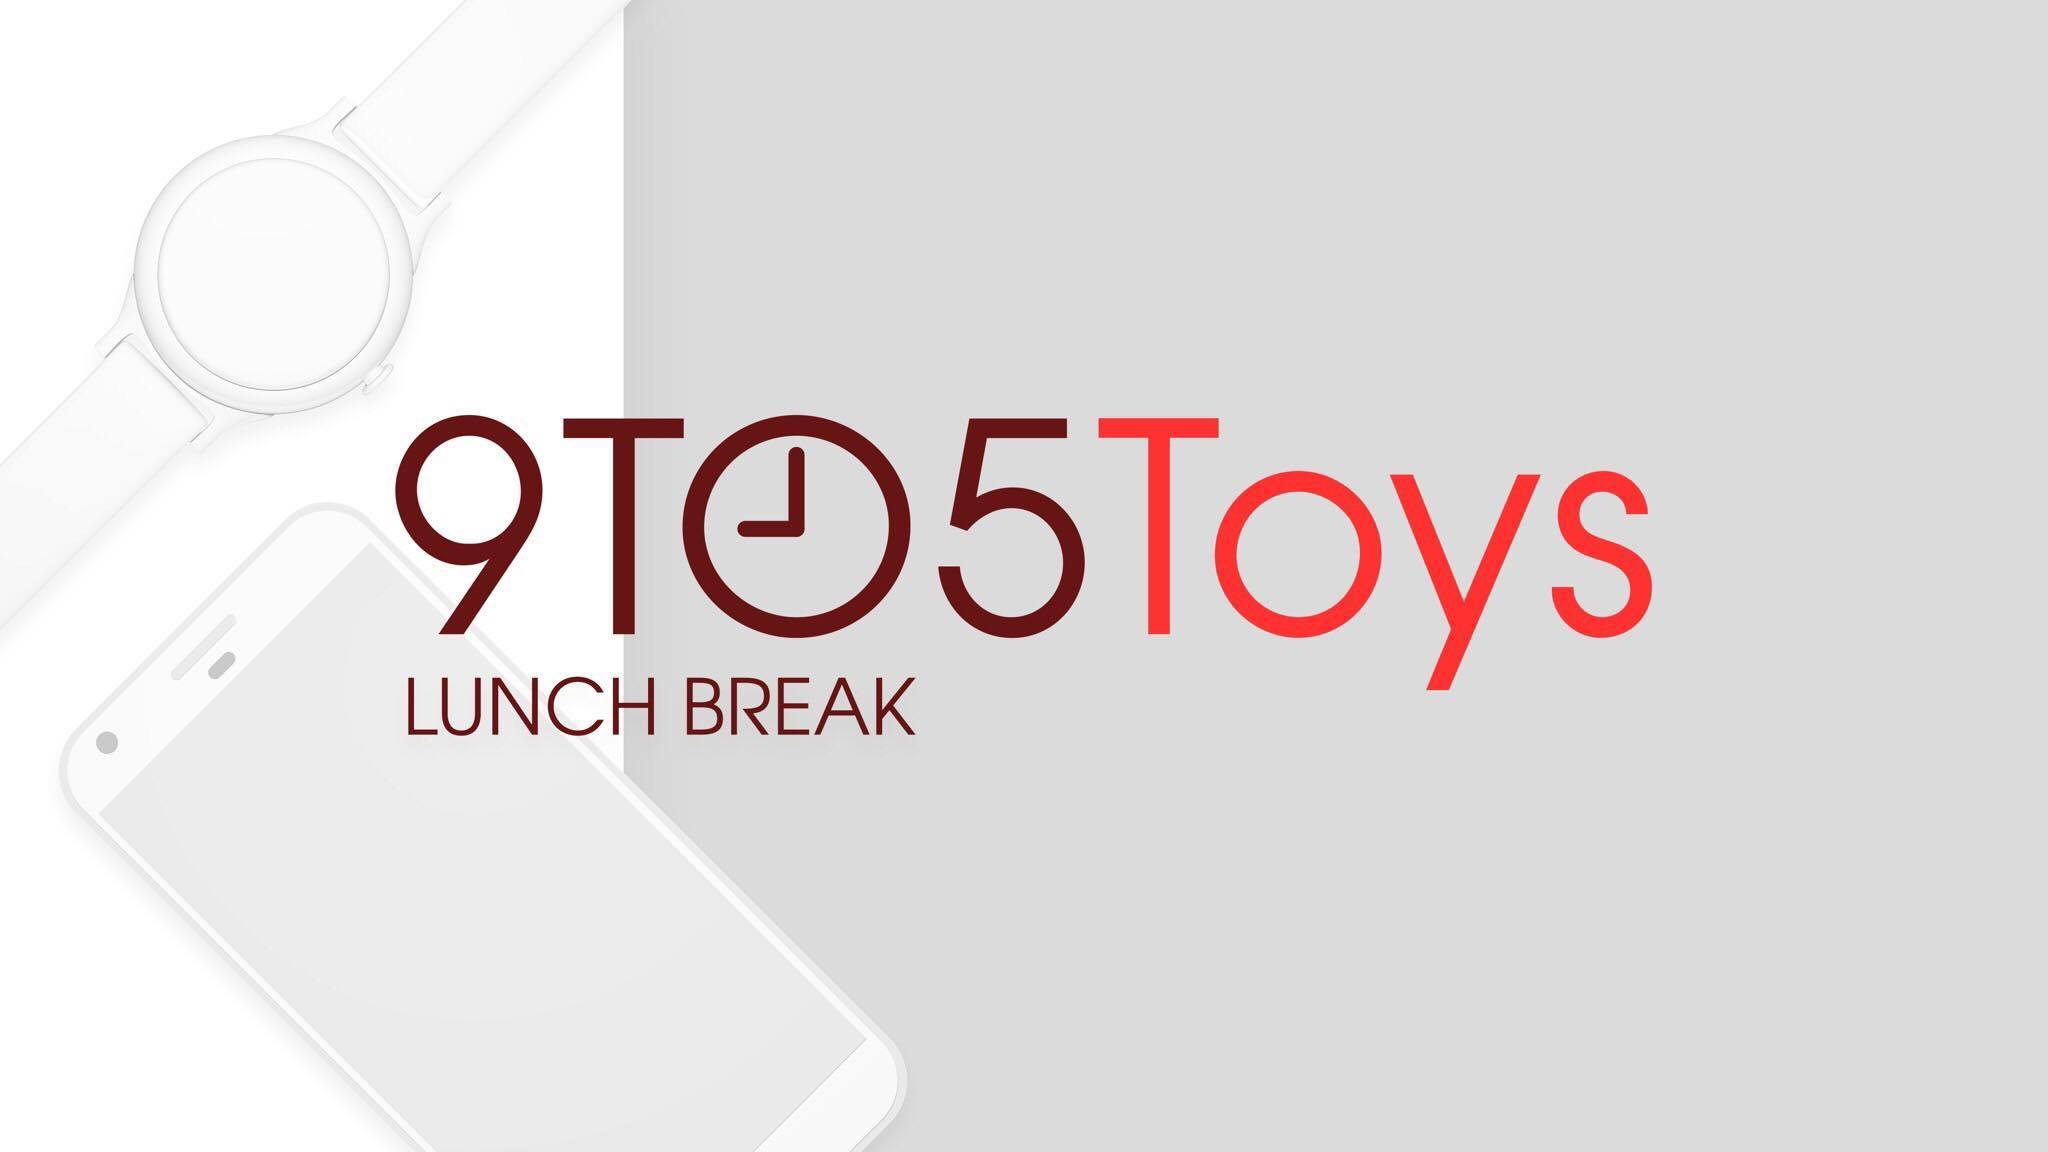 9to5toys lunch break anker charging accessories from 16 lg g6 250 jbl flip 3 bluetooth speaker 55 more